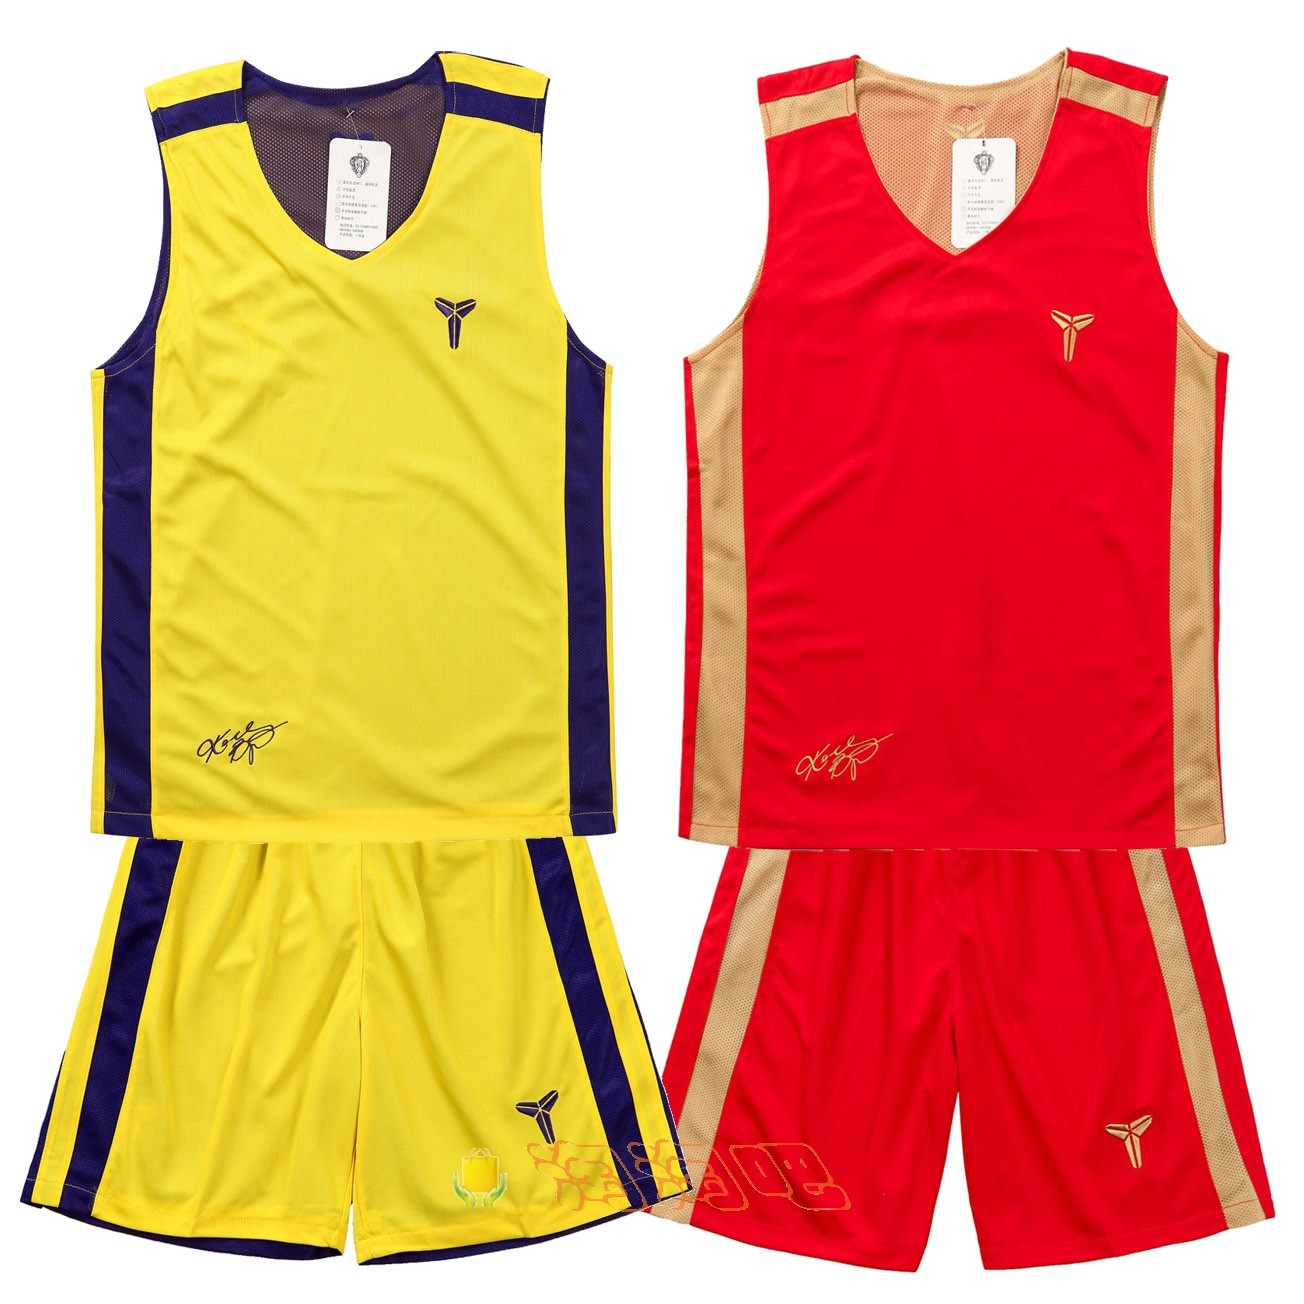 The new kobe basketball shirt can be worn on both sides, and the basketball suit is double mesh and breathable